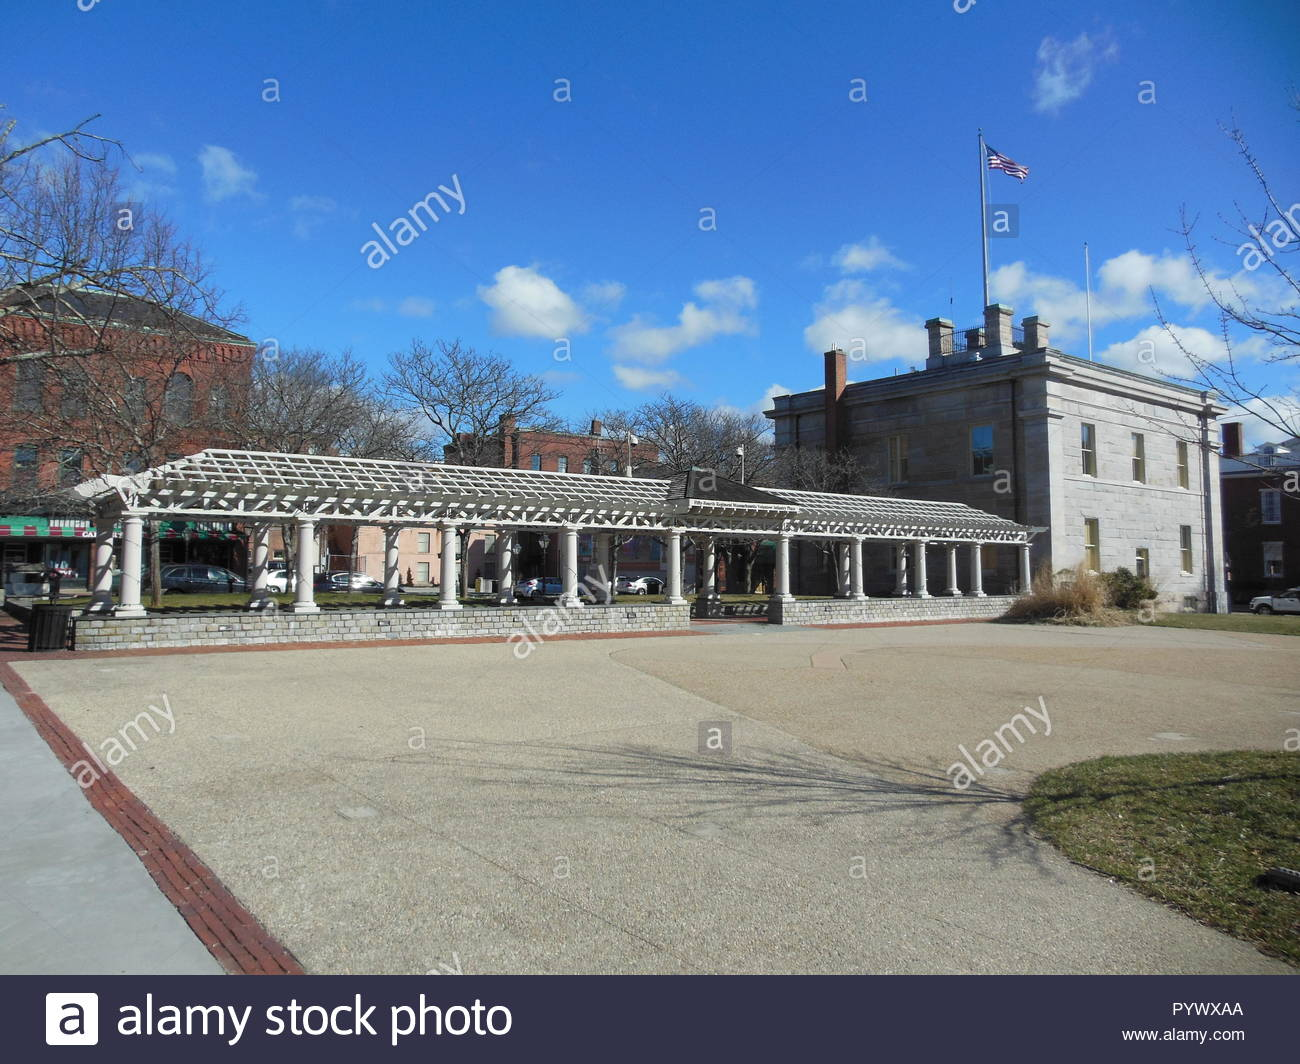 New Bedford, Massachusetts, USA - March 10, 2018: Fifty-Fourth Regiment Massachusetts Volunteer Infantry Plaza at Custom House Square Stock Photo